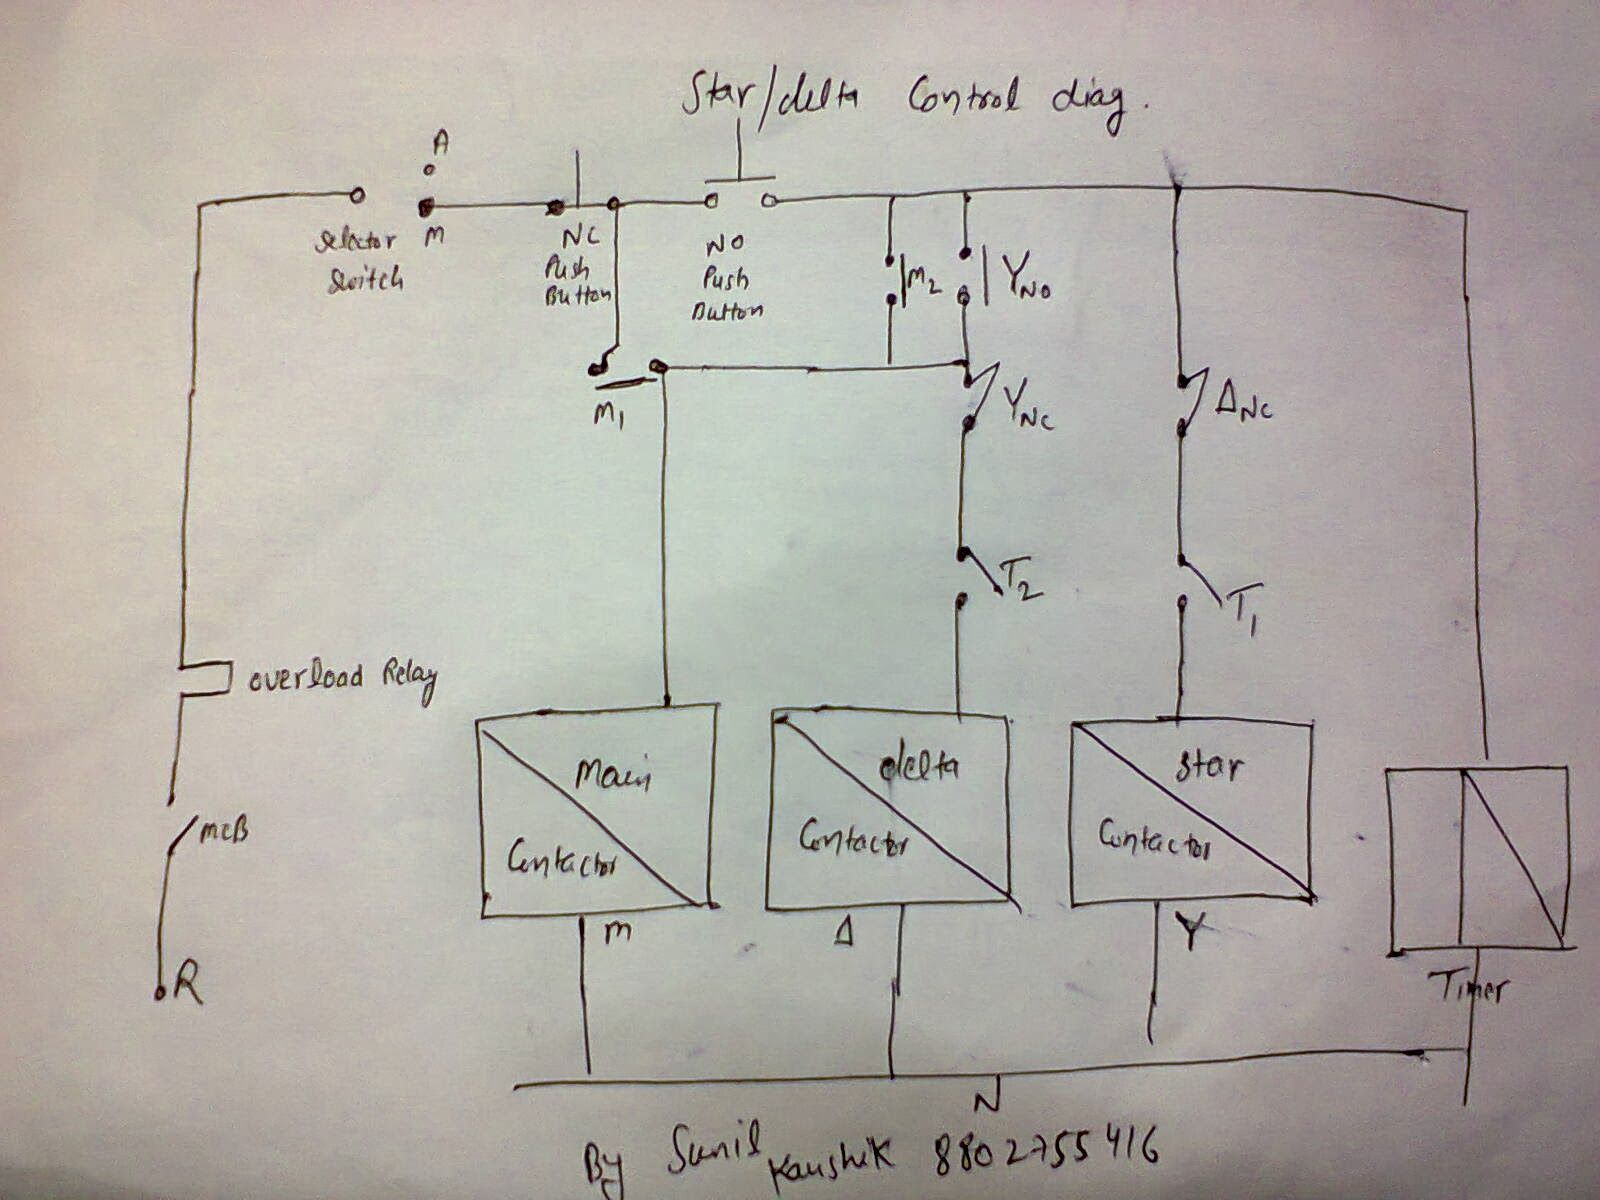 Square D Magic Starter Wiring Diagram Diagrams | Wiring Liry on